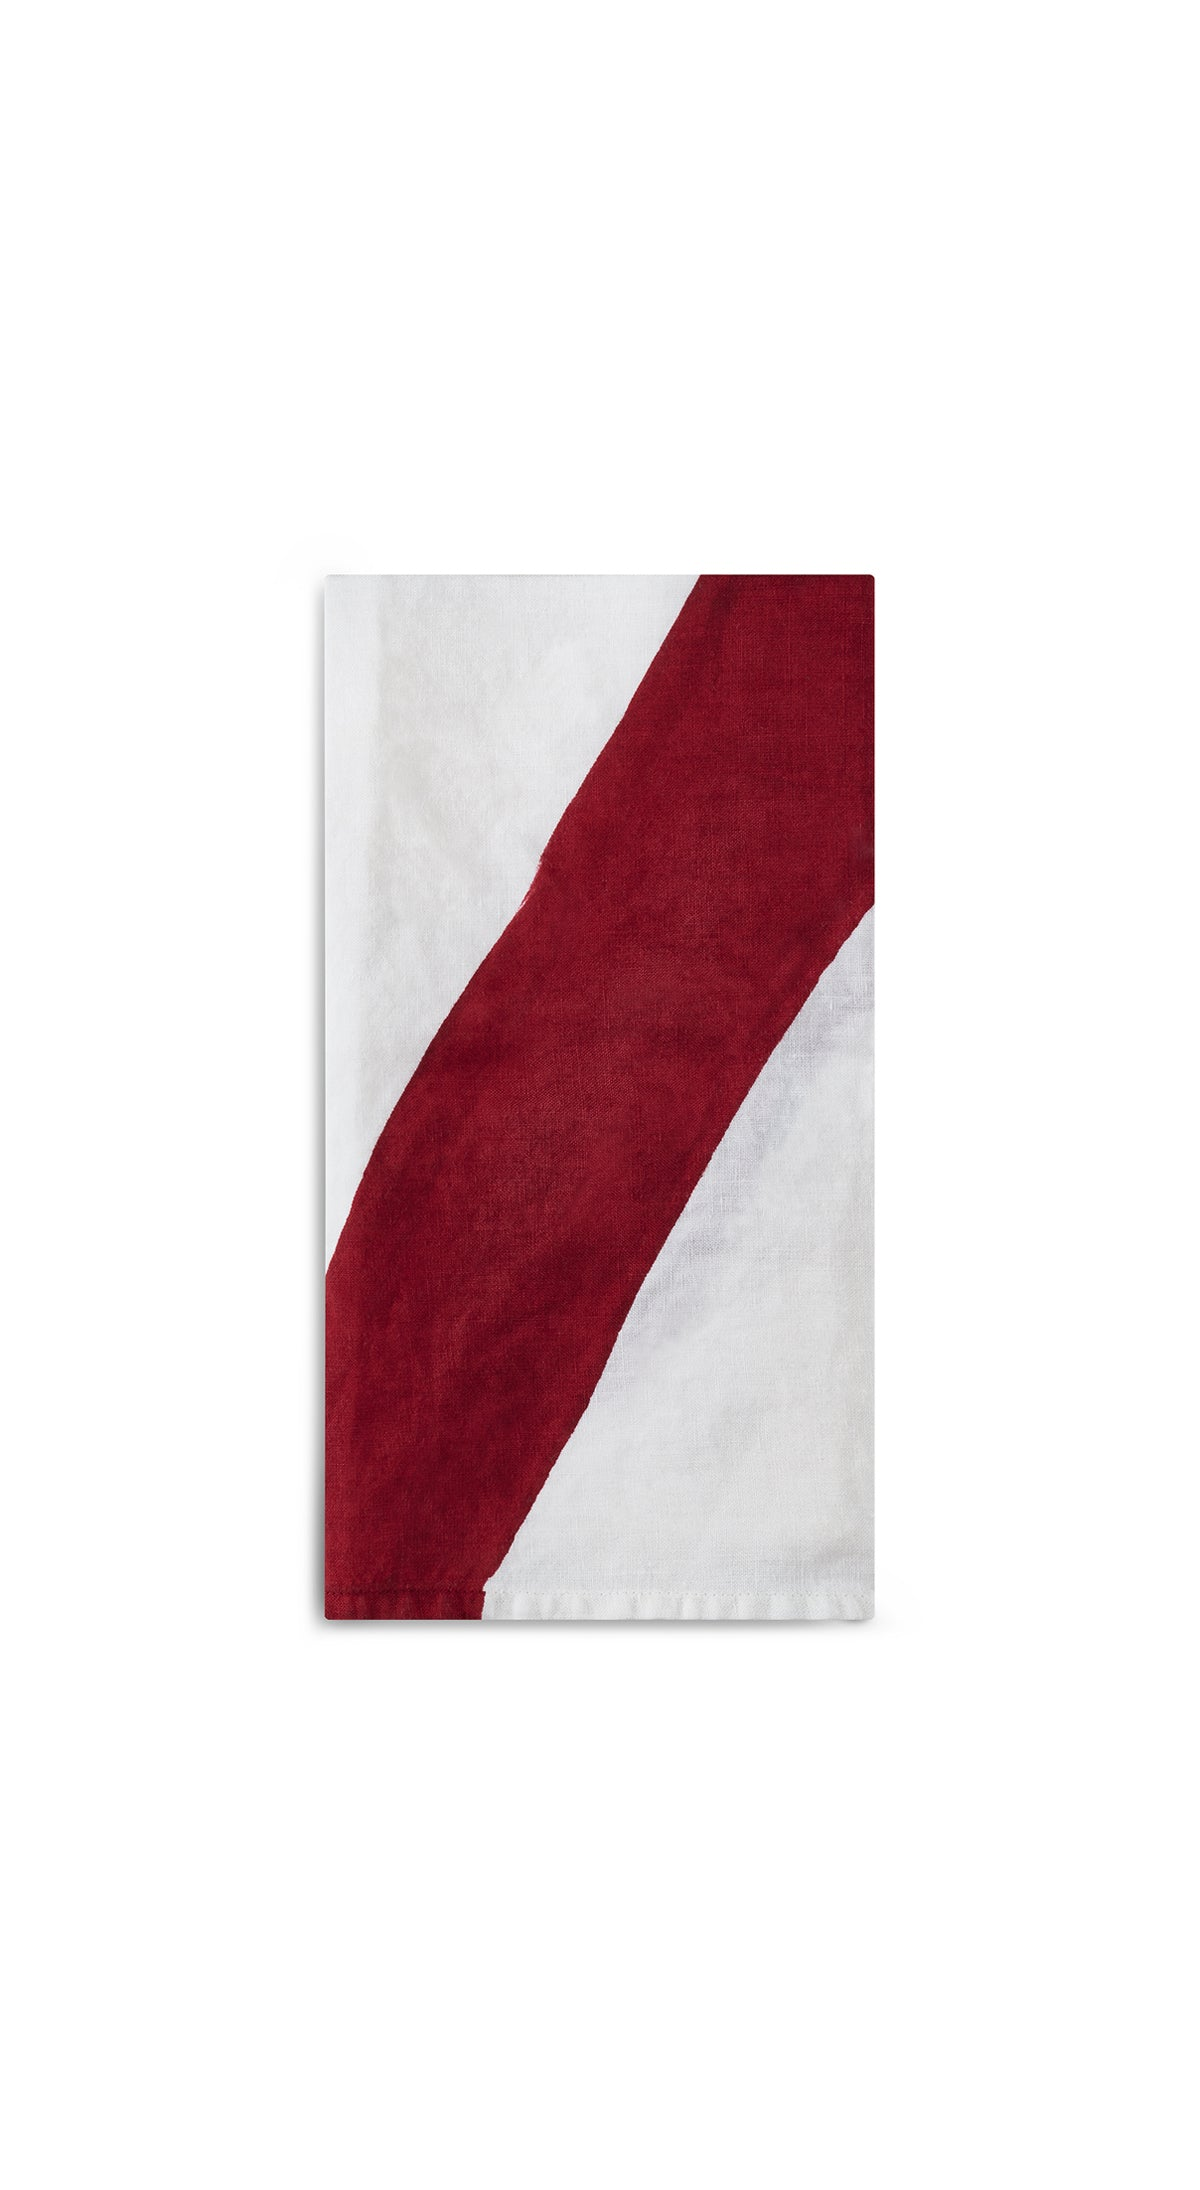 Alphabet Napkin 'X' in Claret Red